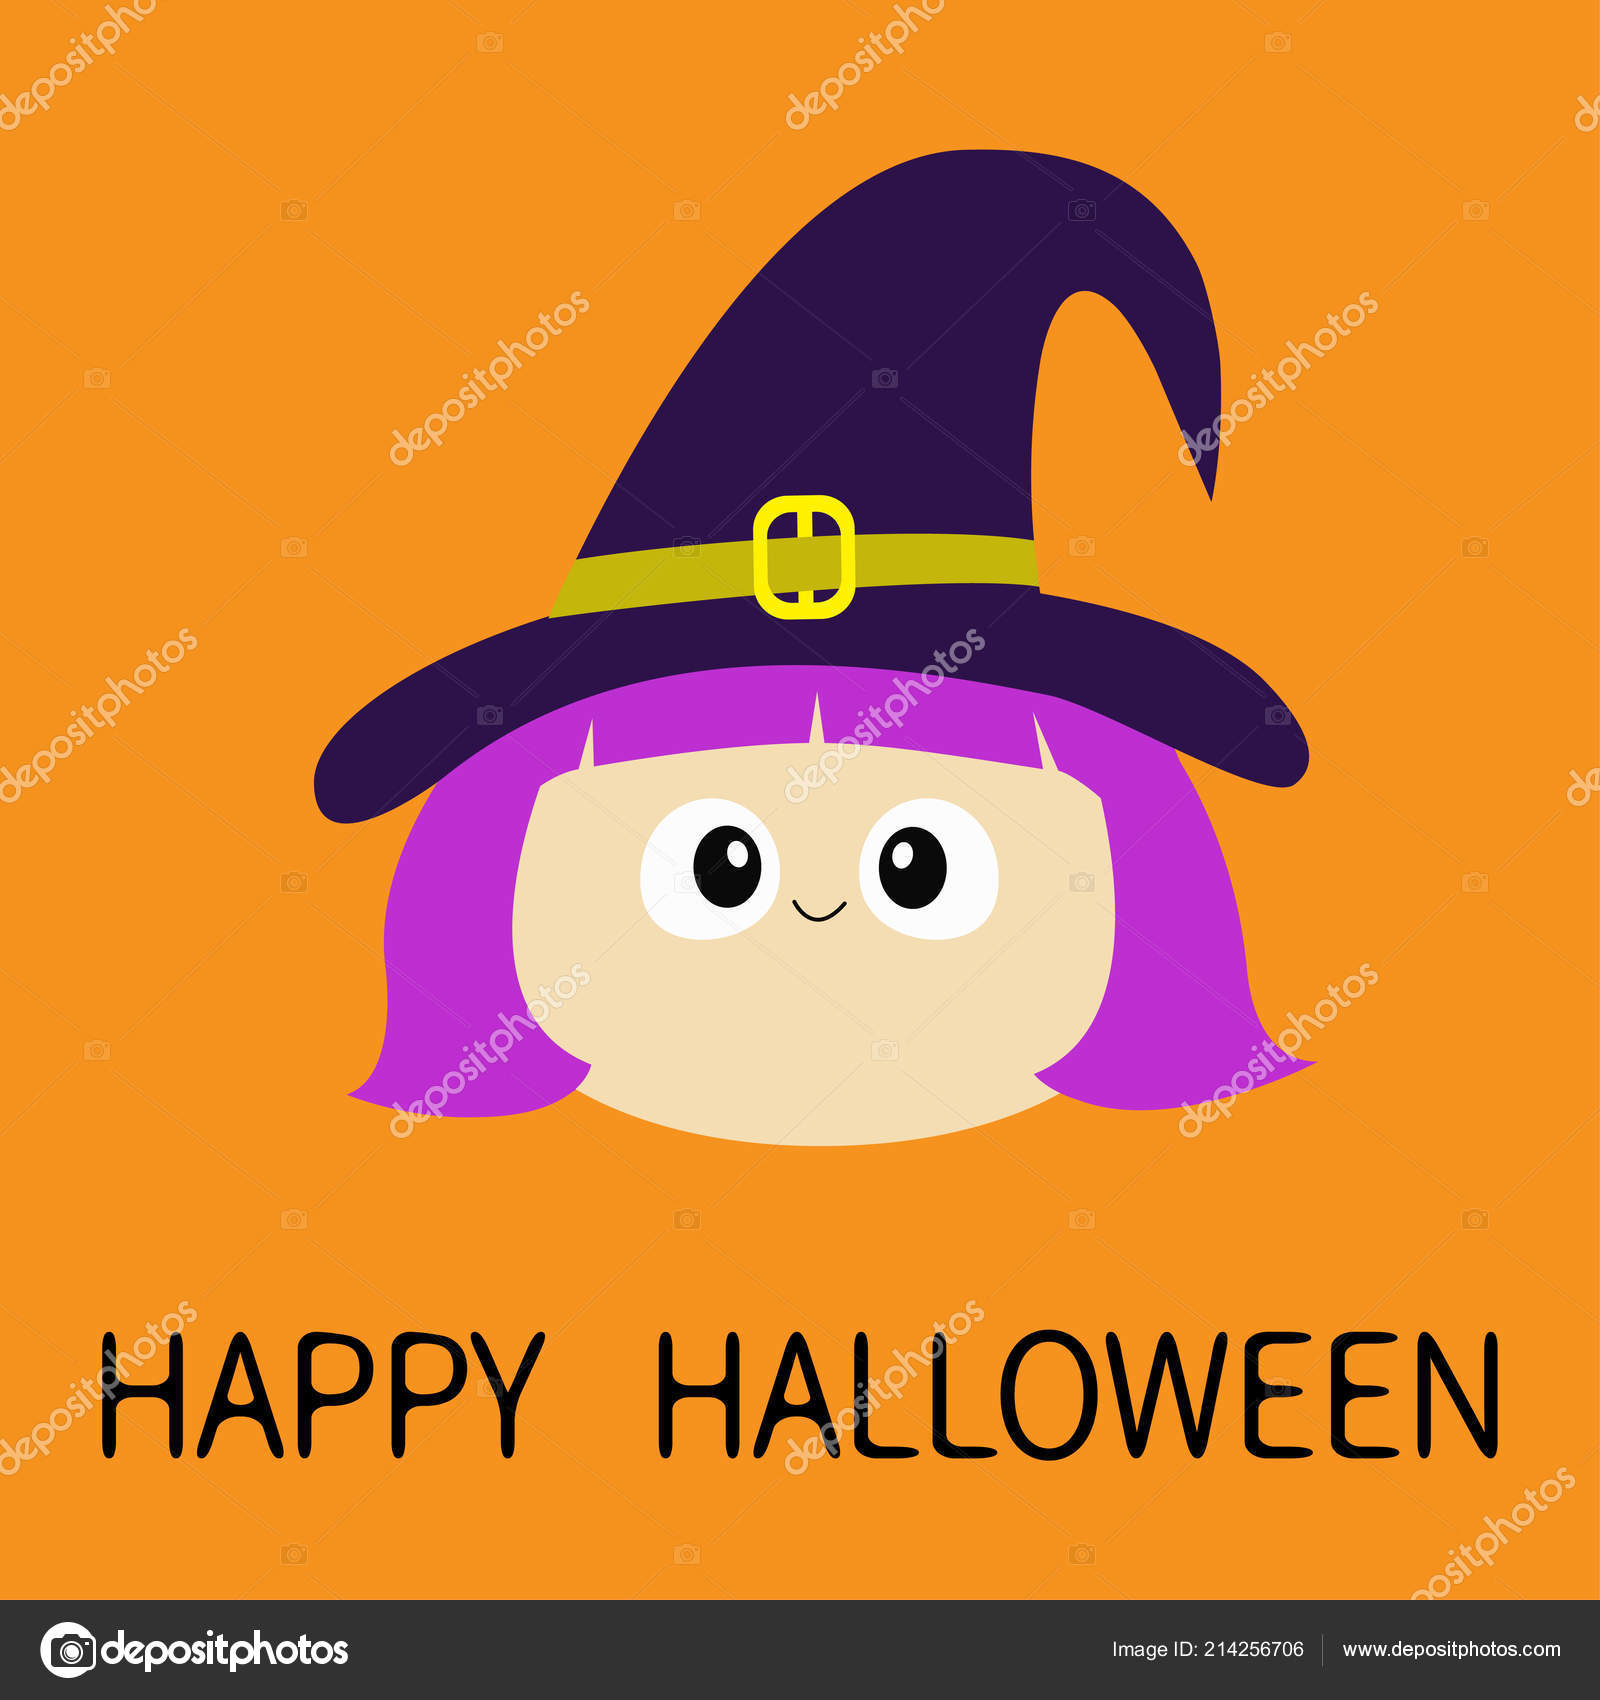 Halloween Cartoon Witch Face.Happy Halloween Witch Girl Face Wearing Curl Hat Cartoon Funny